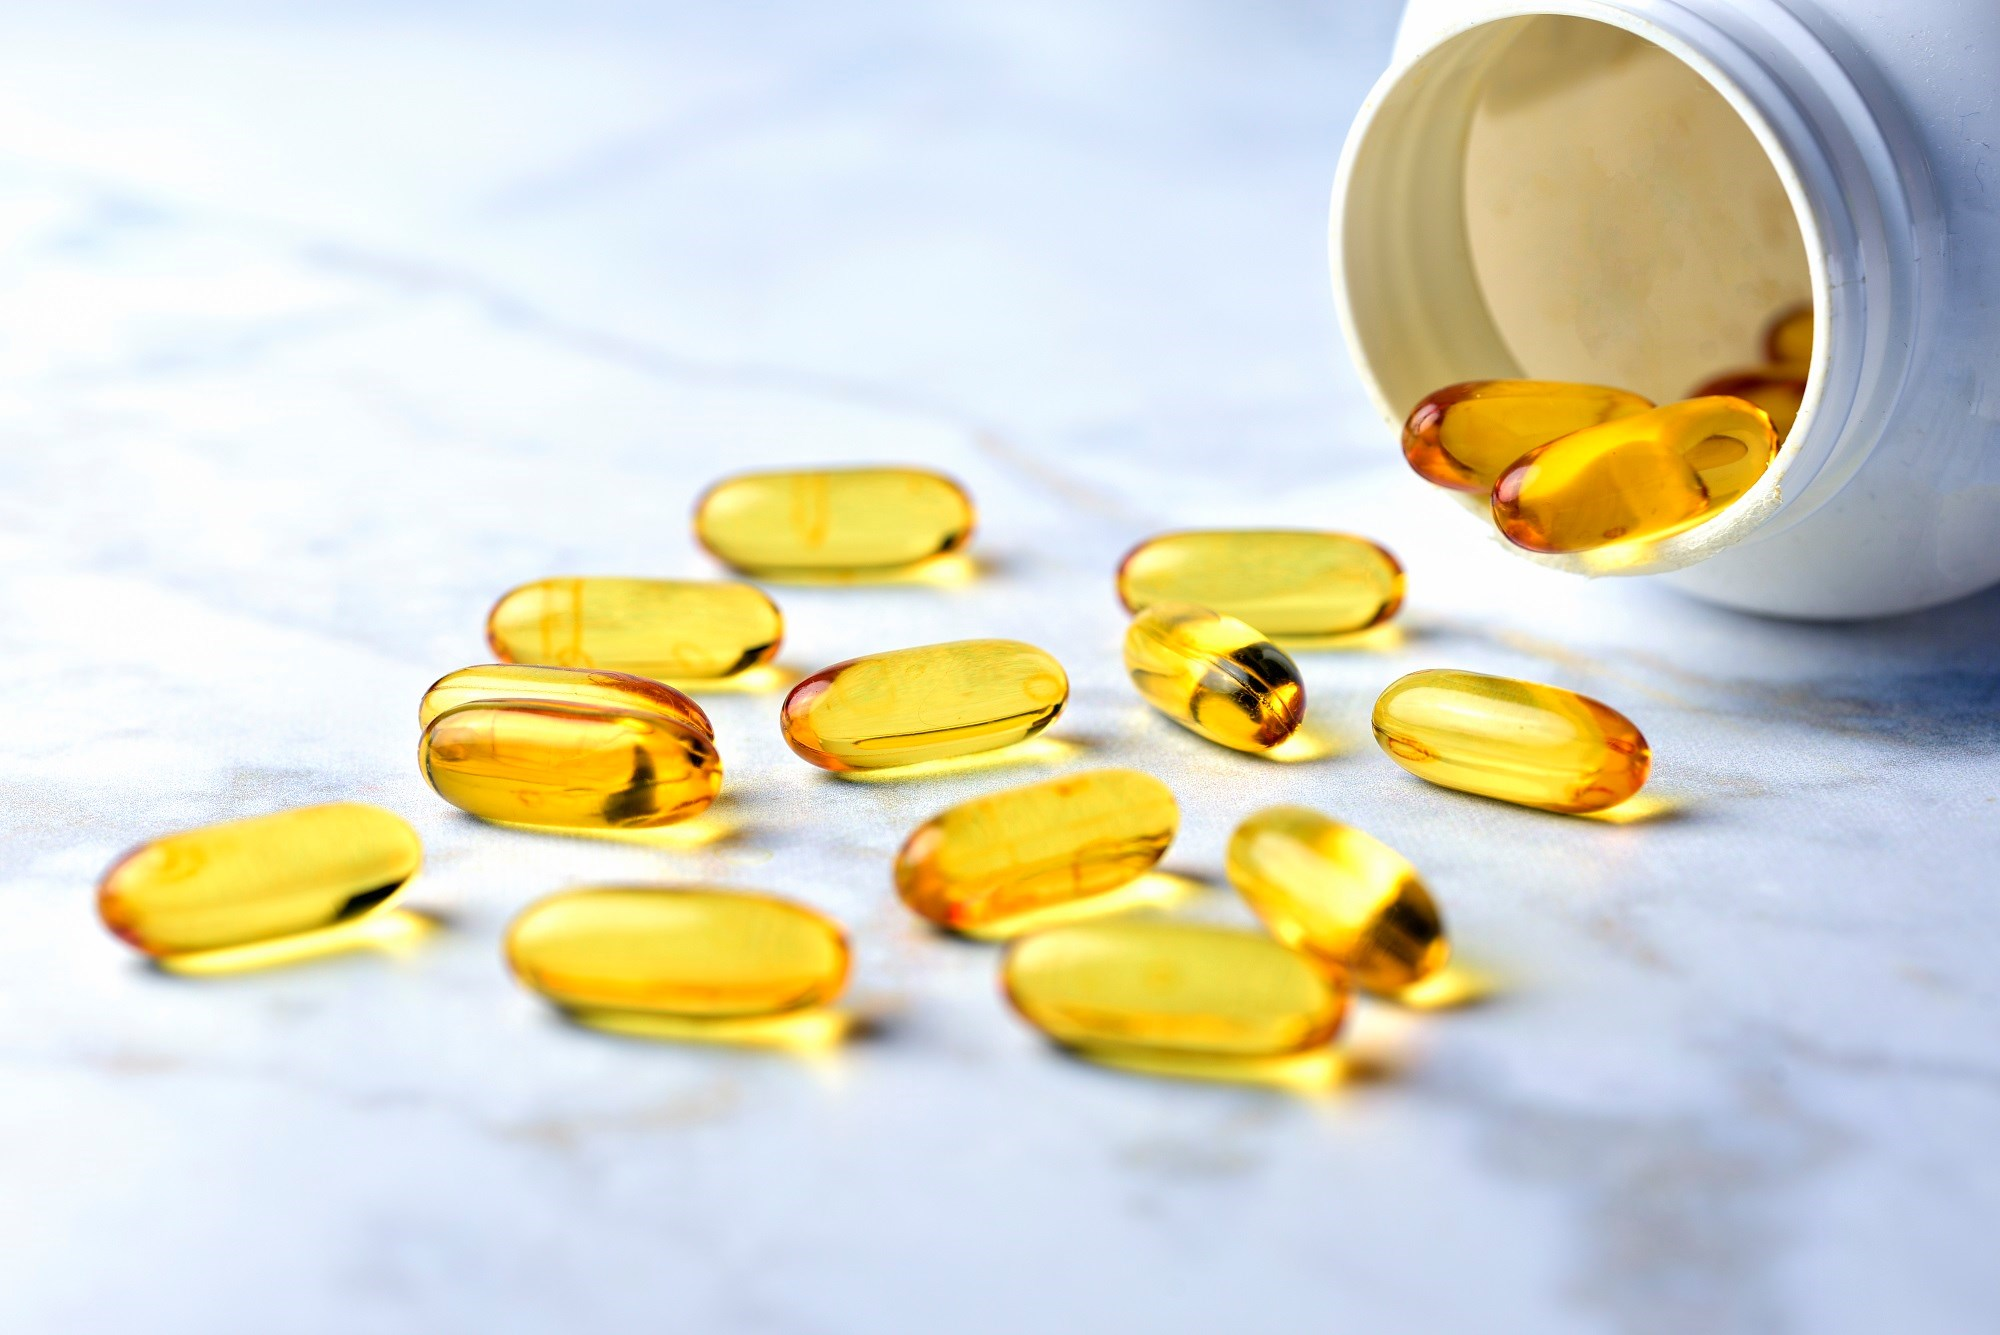 Fish Oil Dietary Supplement Use Examined Among Cardiac Patients